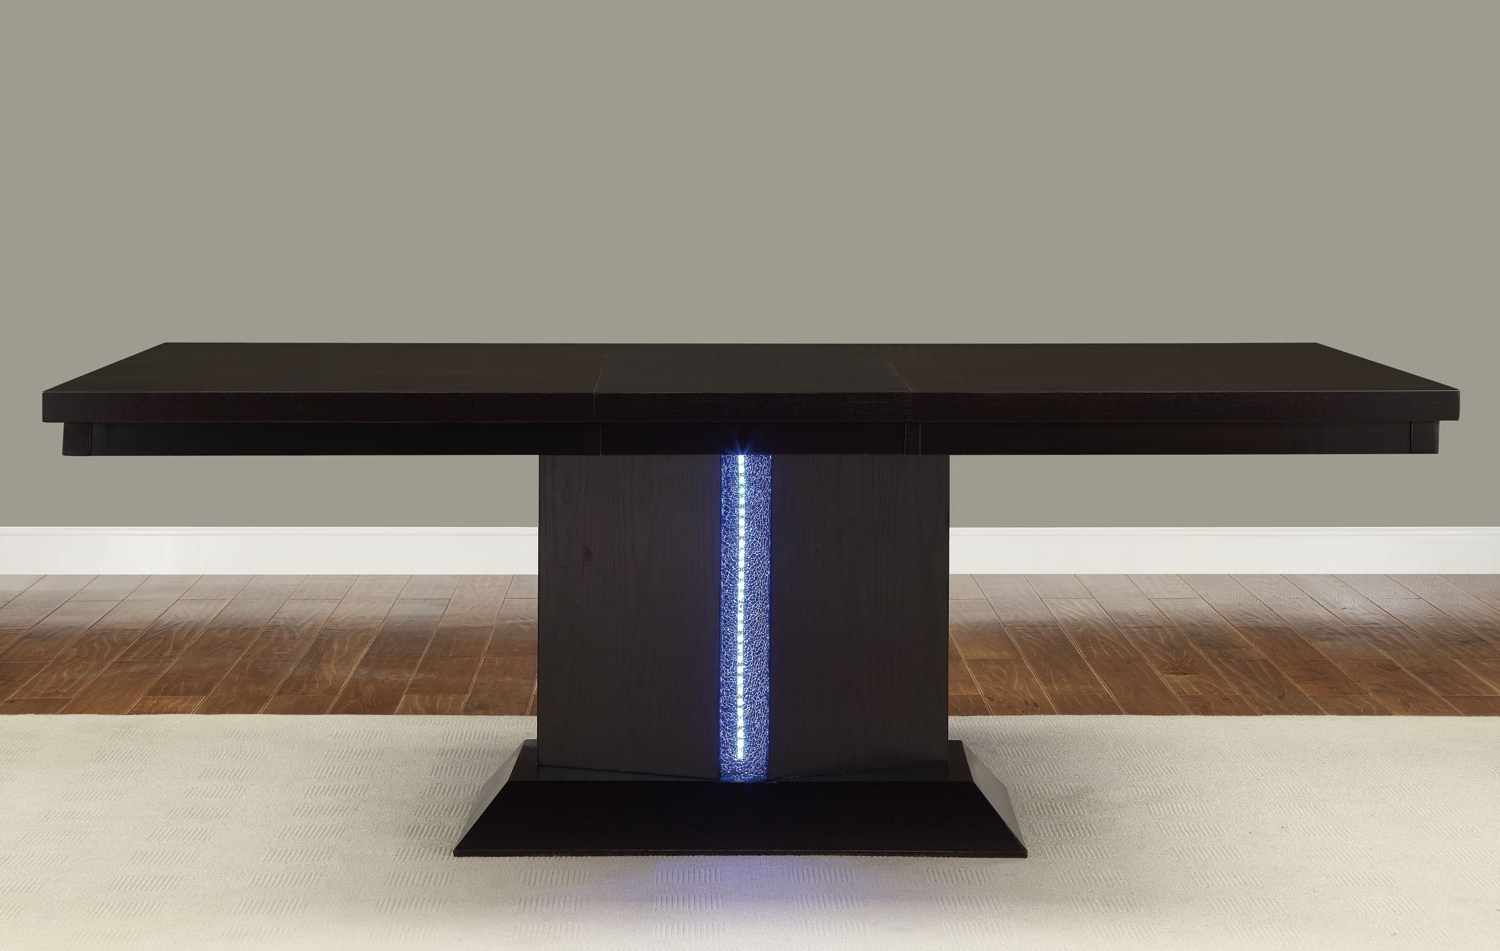 Led Dining Tables Lights Regarding Popular Homelegance Pulse Dining Table With Led Light – Espresso? 2579  (View 14 of 25)